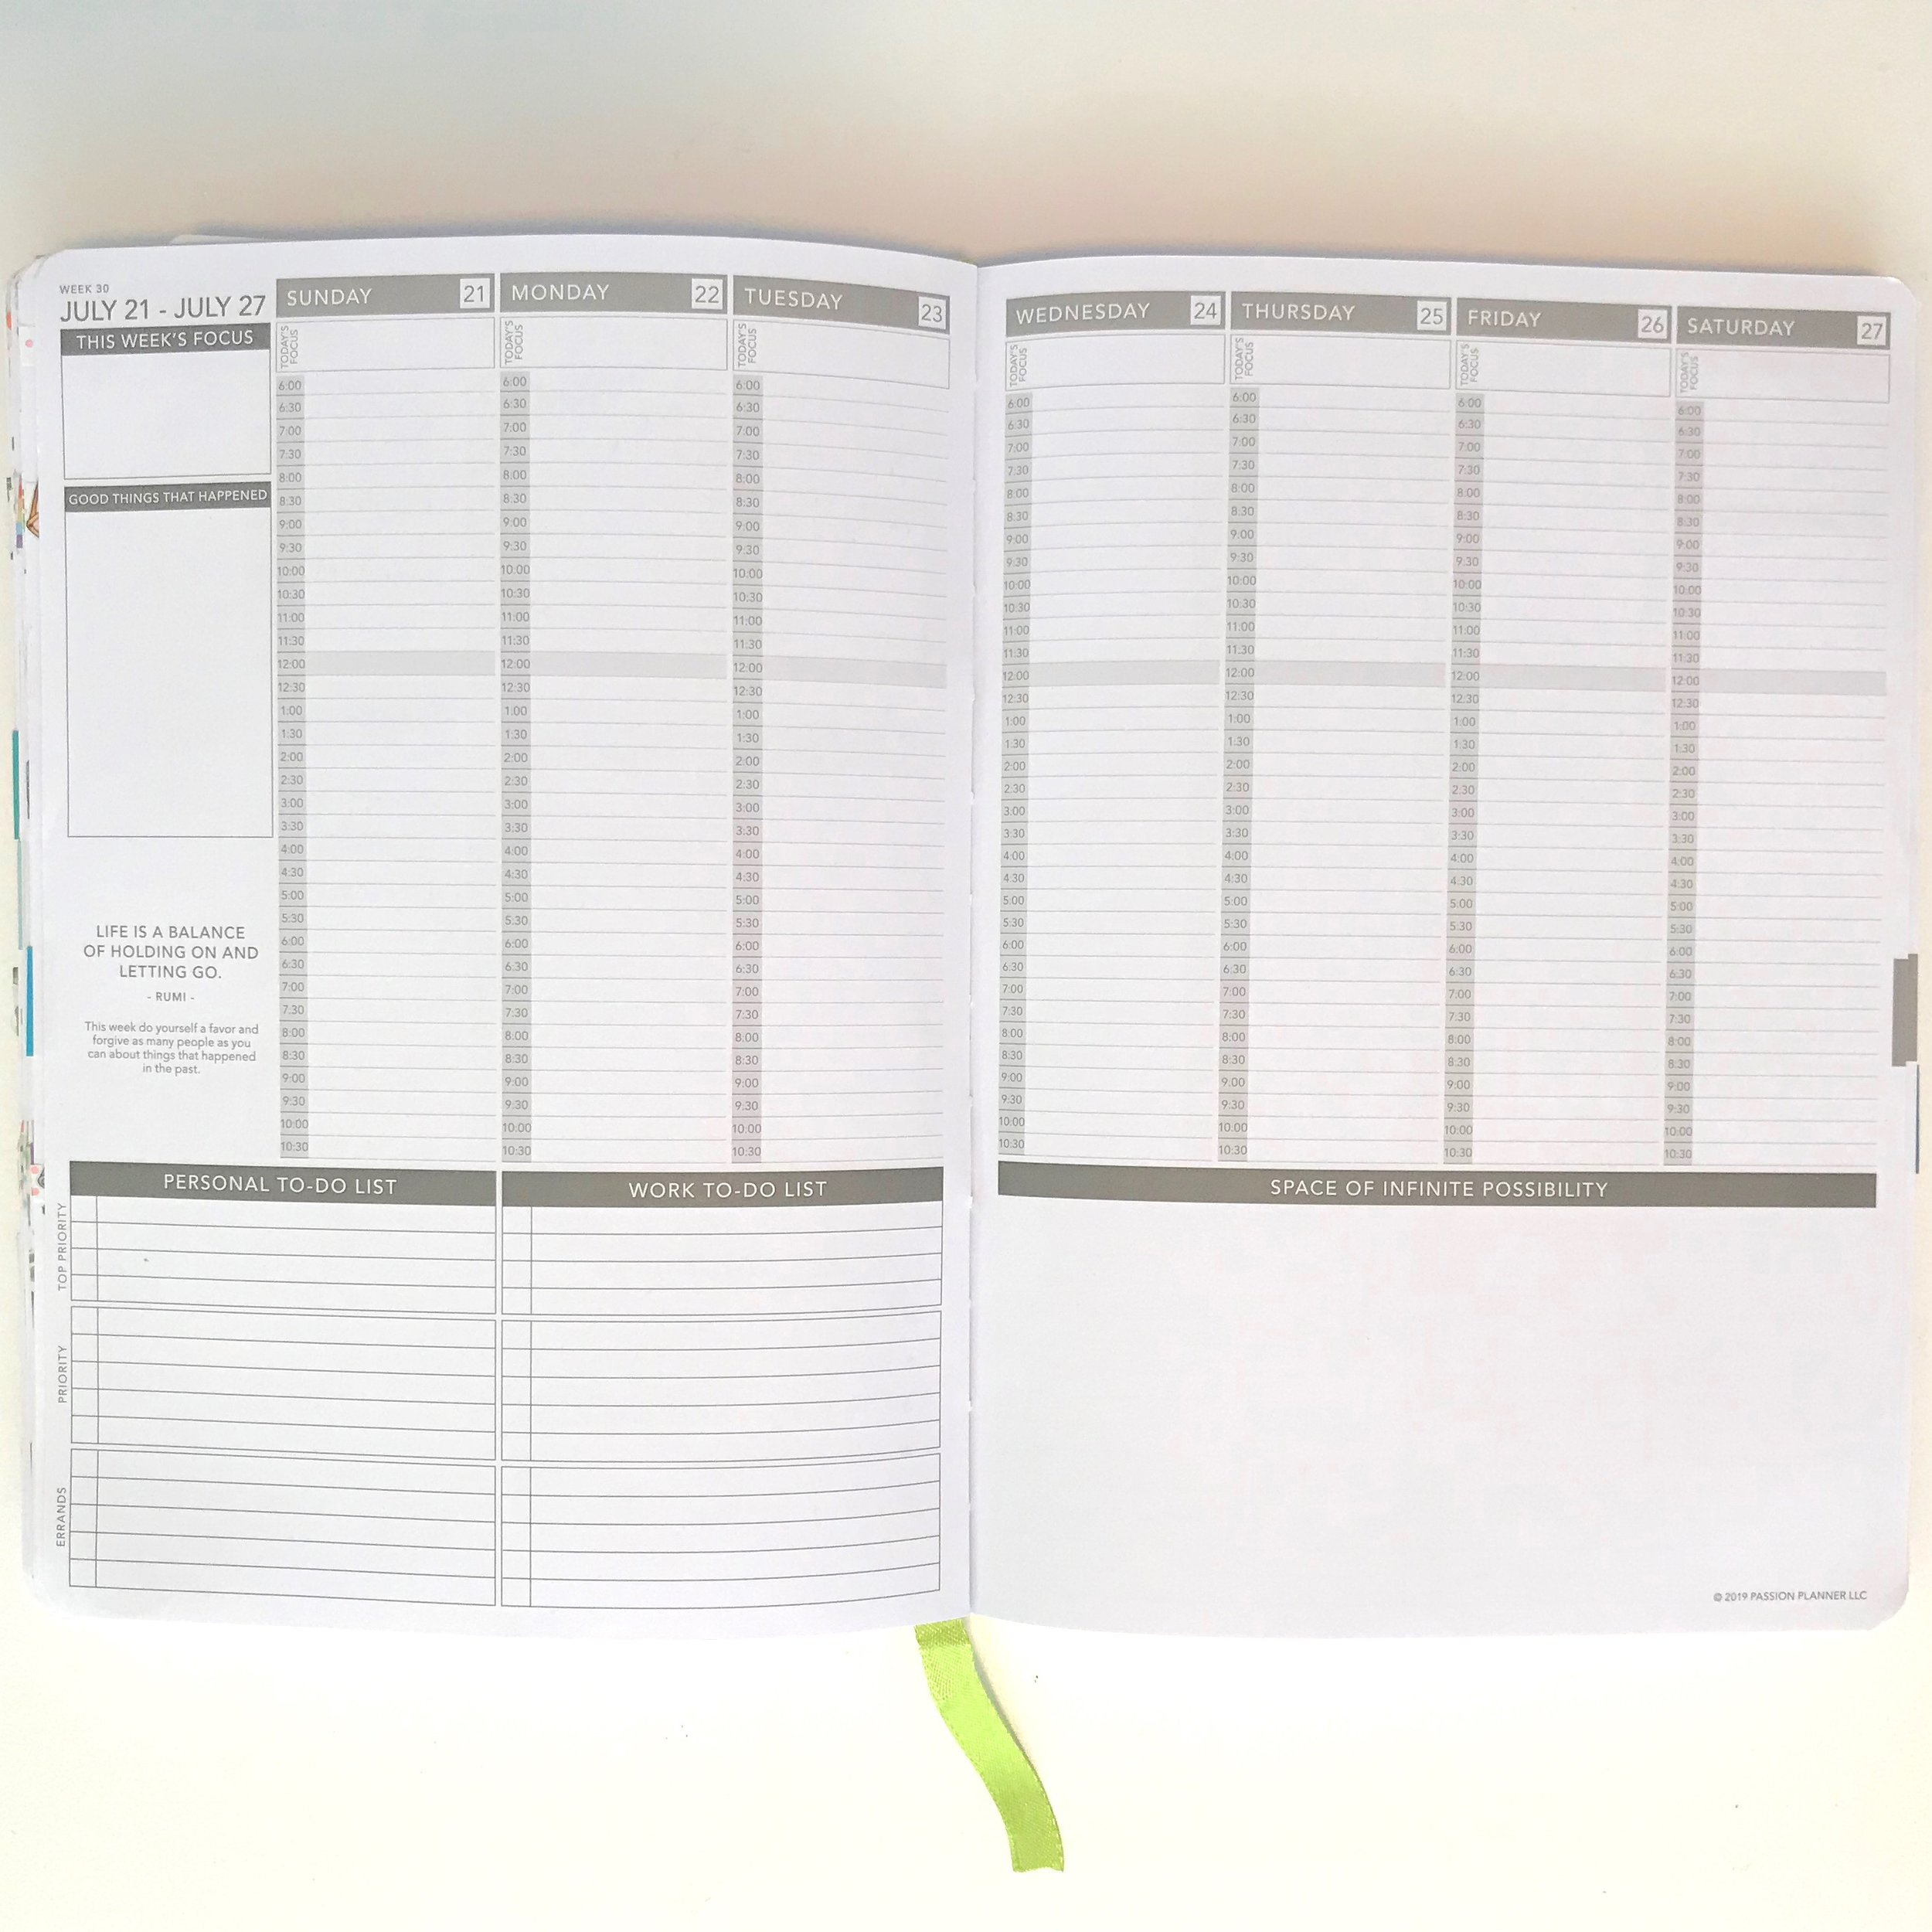 Monthly spread ideas for moms and student planners.